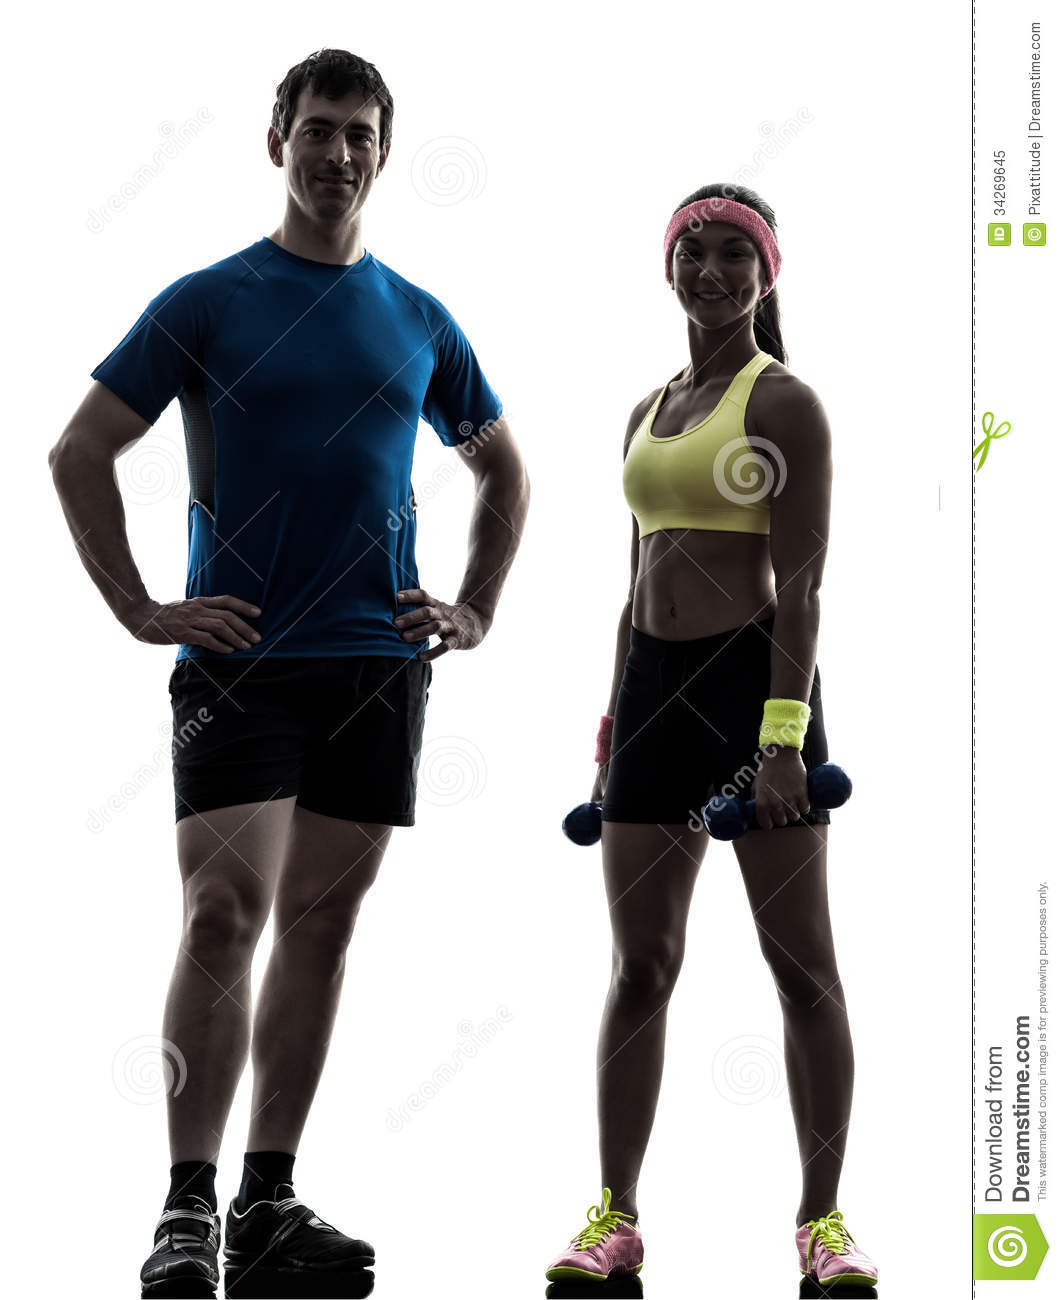 Man Workout: Woman Exercising Fitness Workout With Man Coach Posing